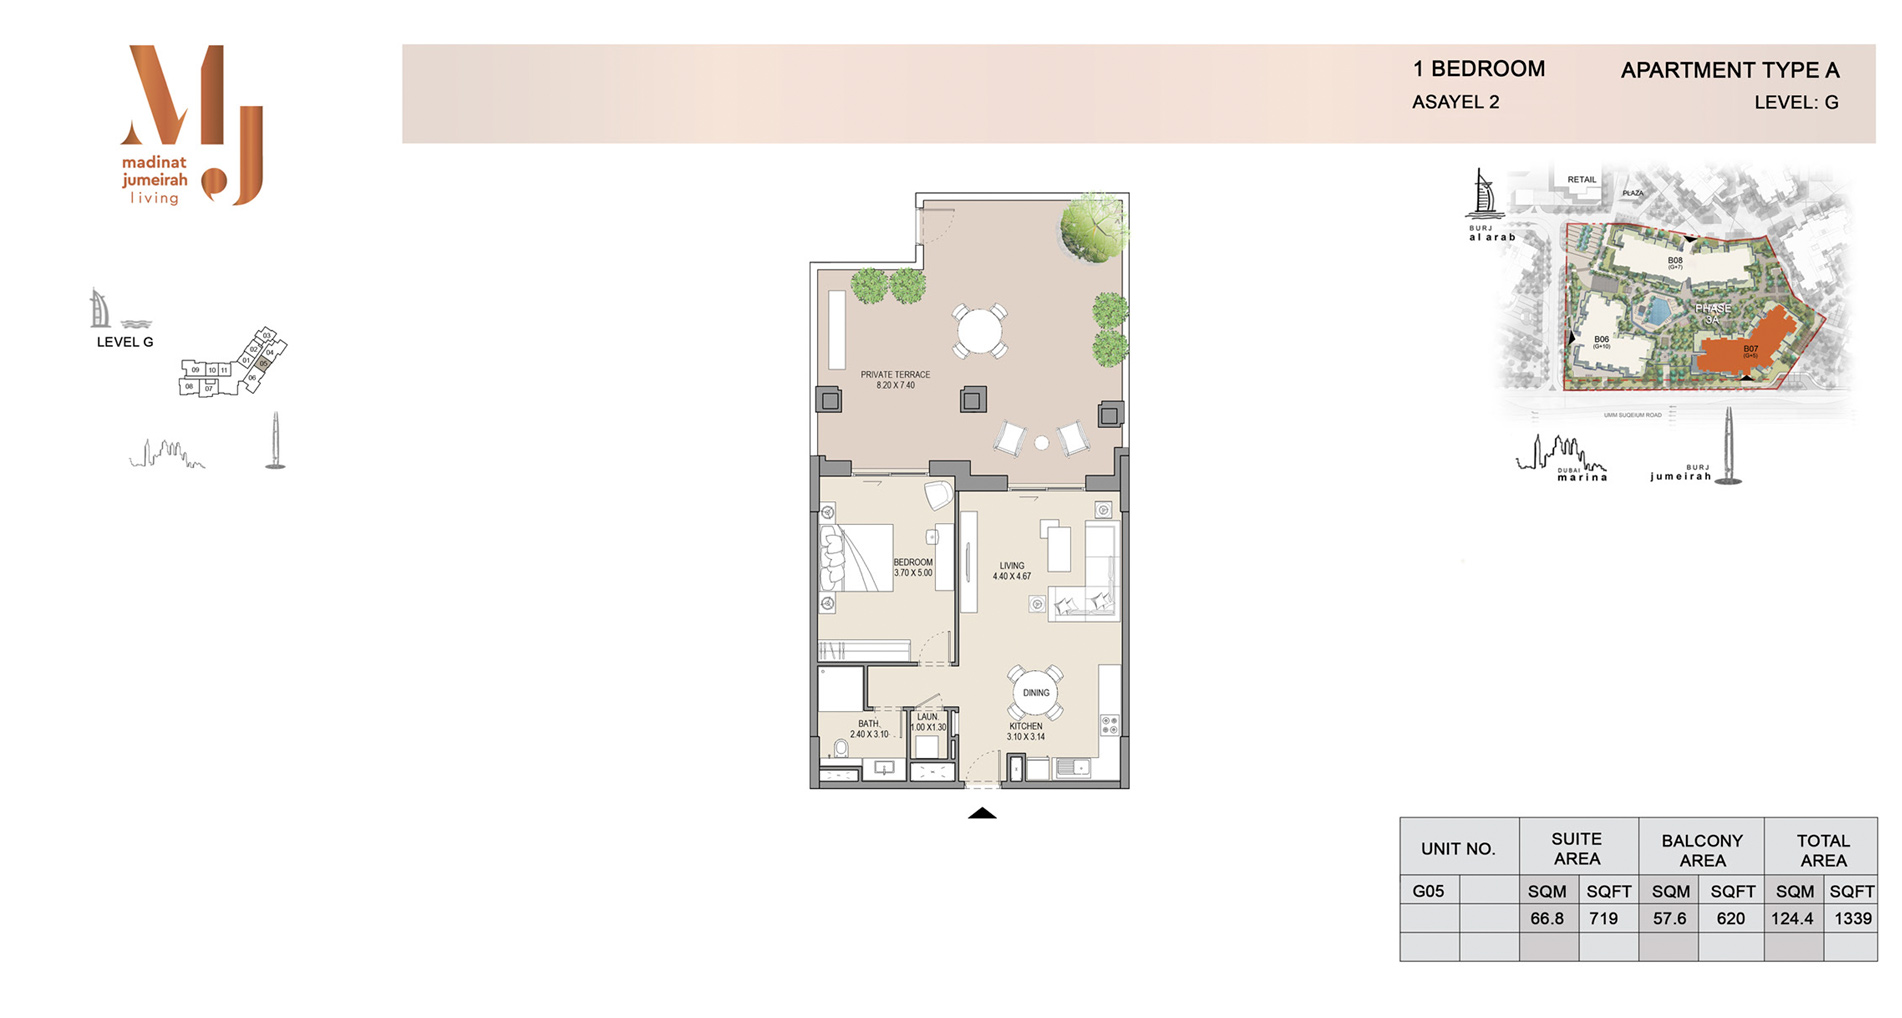 Building-2, 1 Bed Type A Level G, Size 1339    sq. ft.